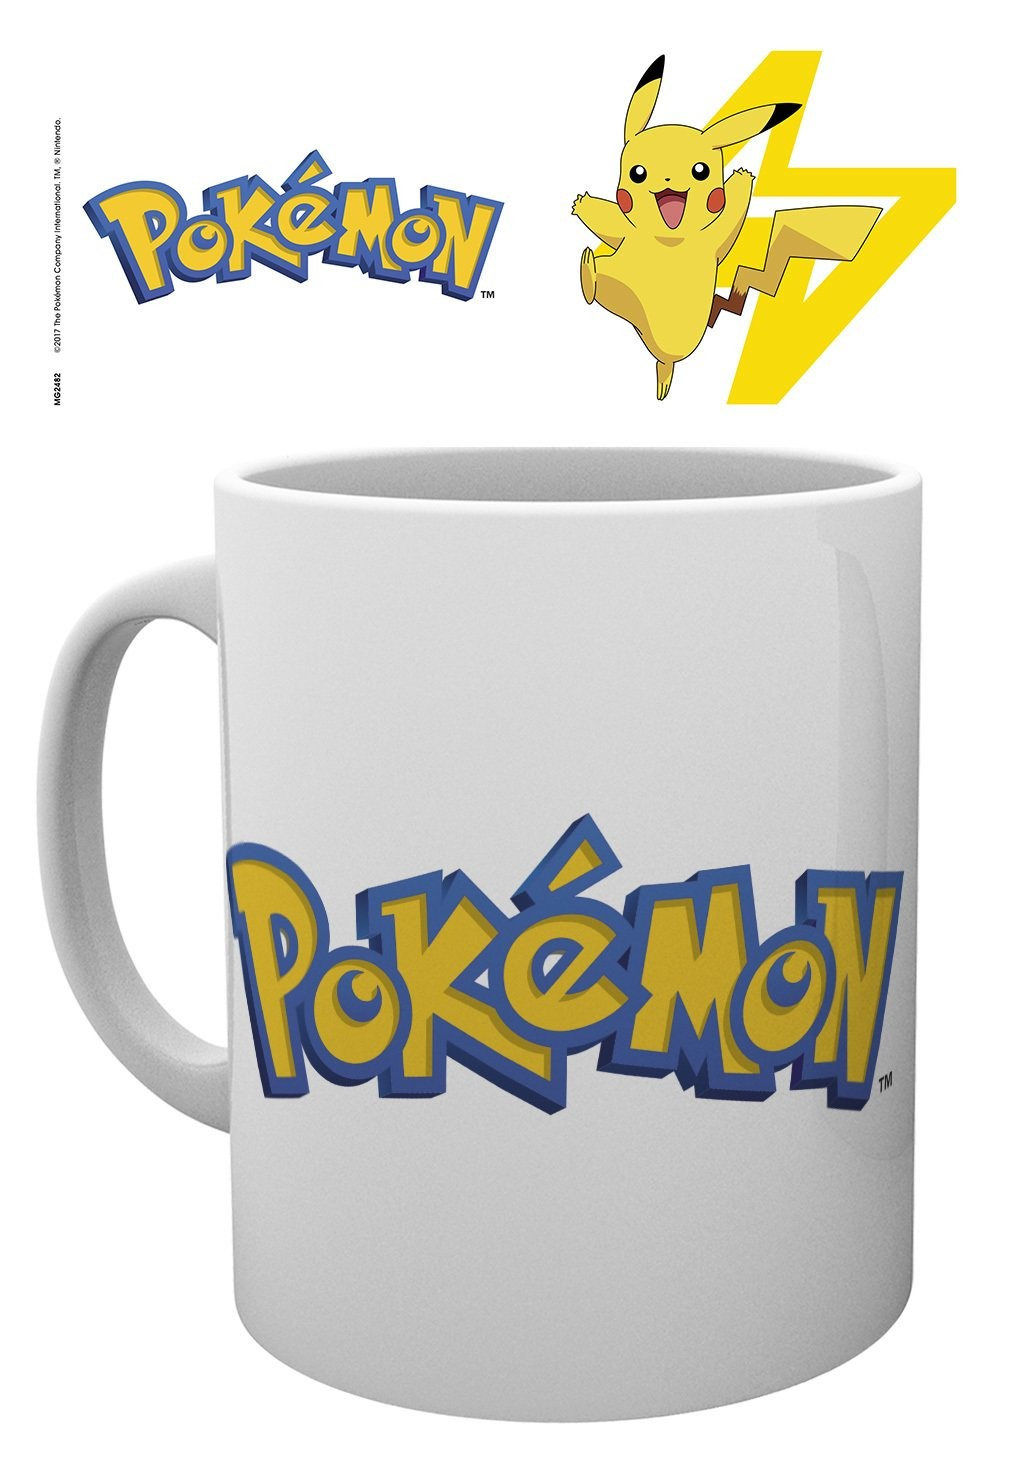 POKEMON Logo And Pikachu mug